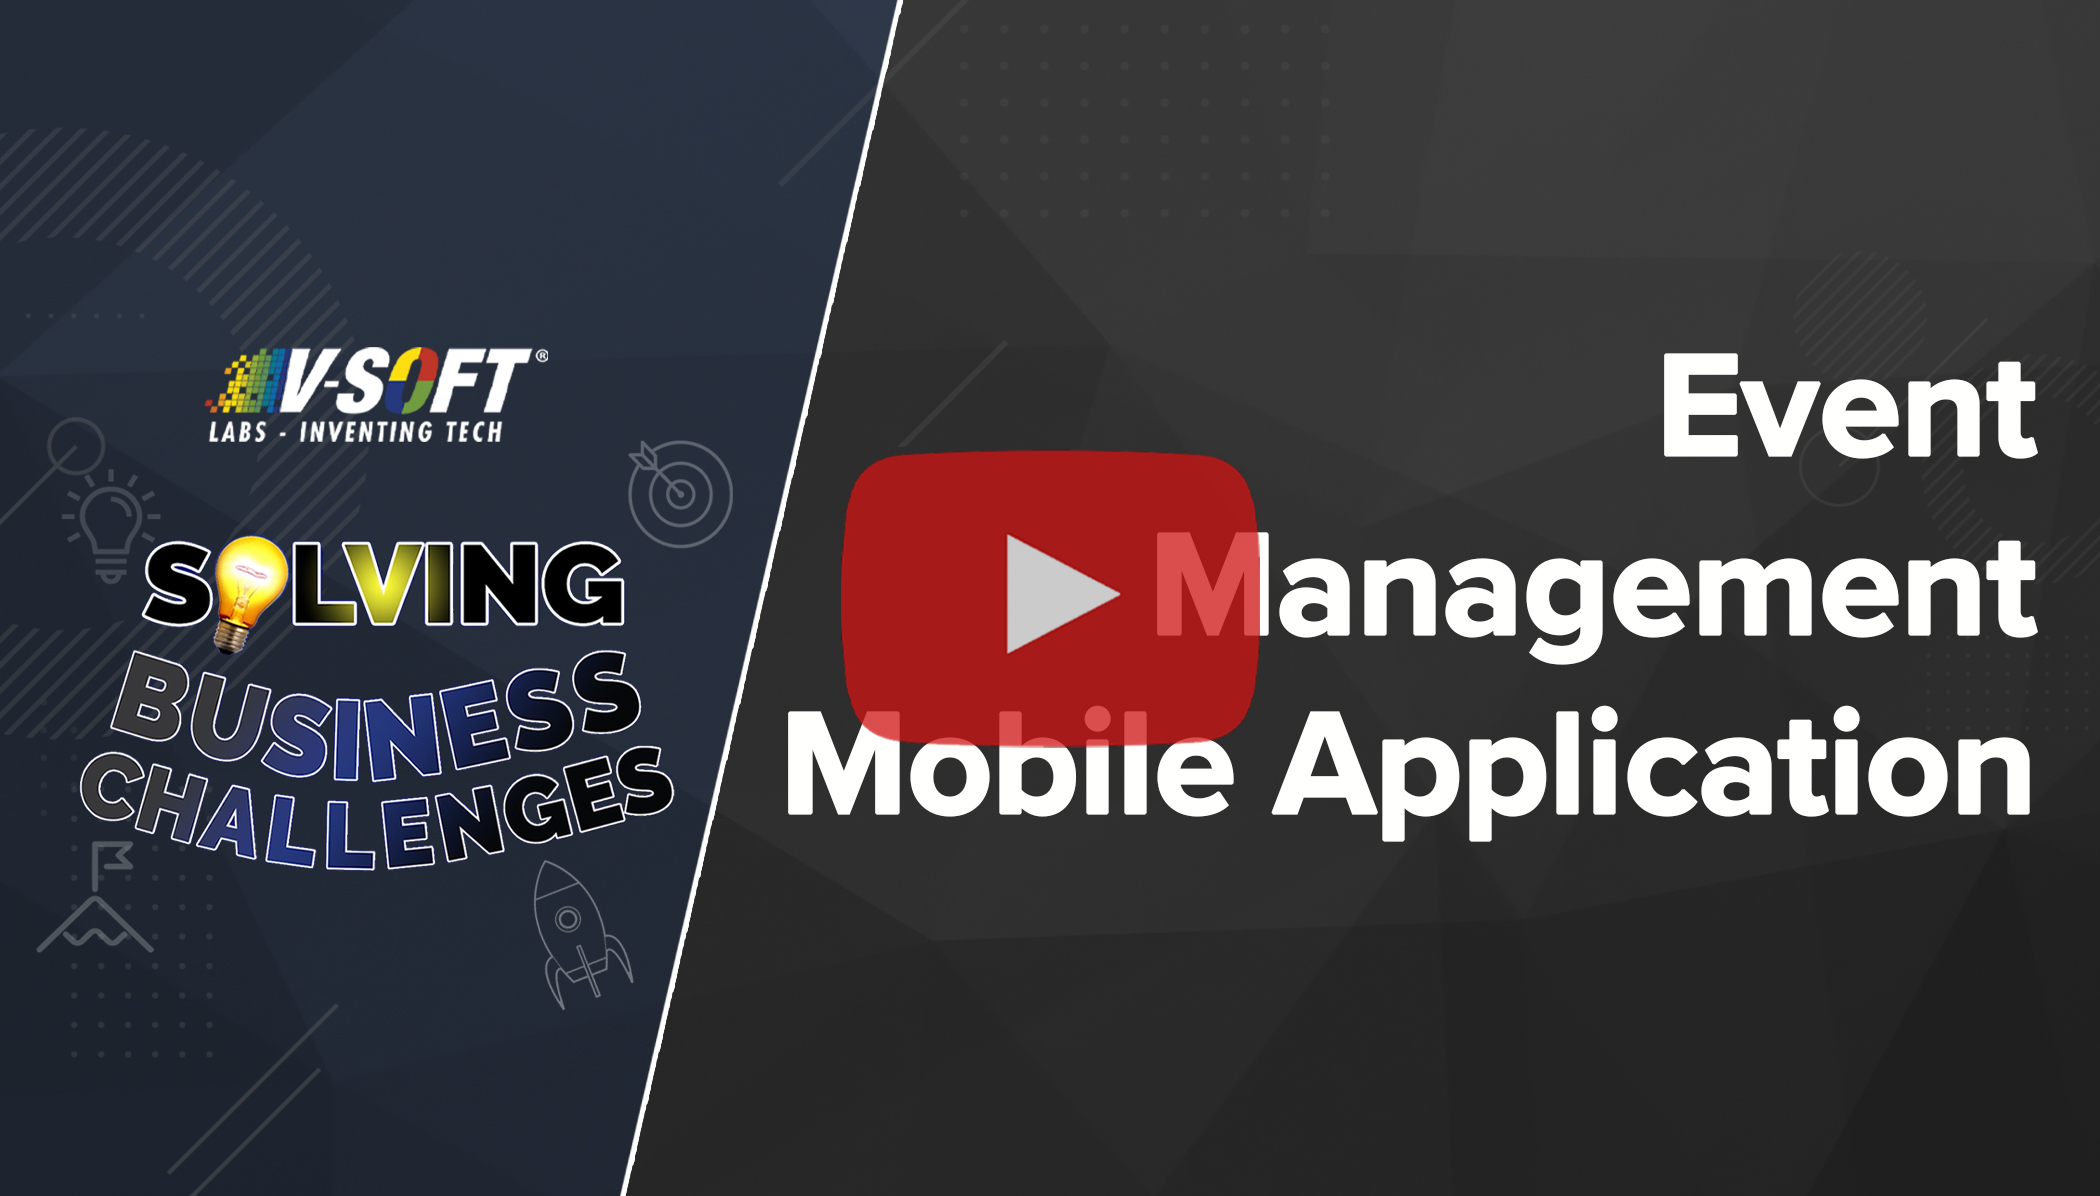 V-Soft Labs Case Study Event Management Mobile App Development